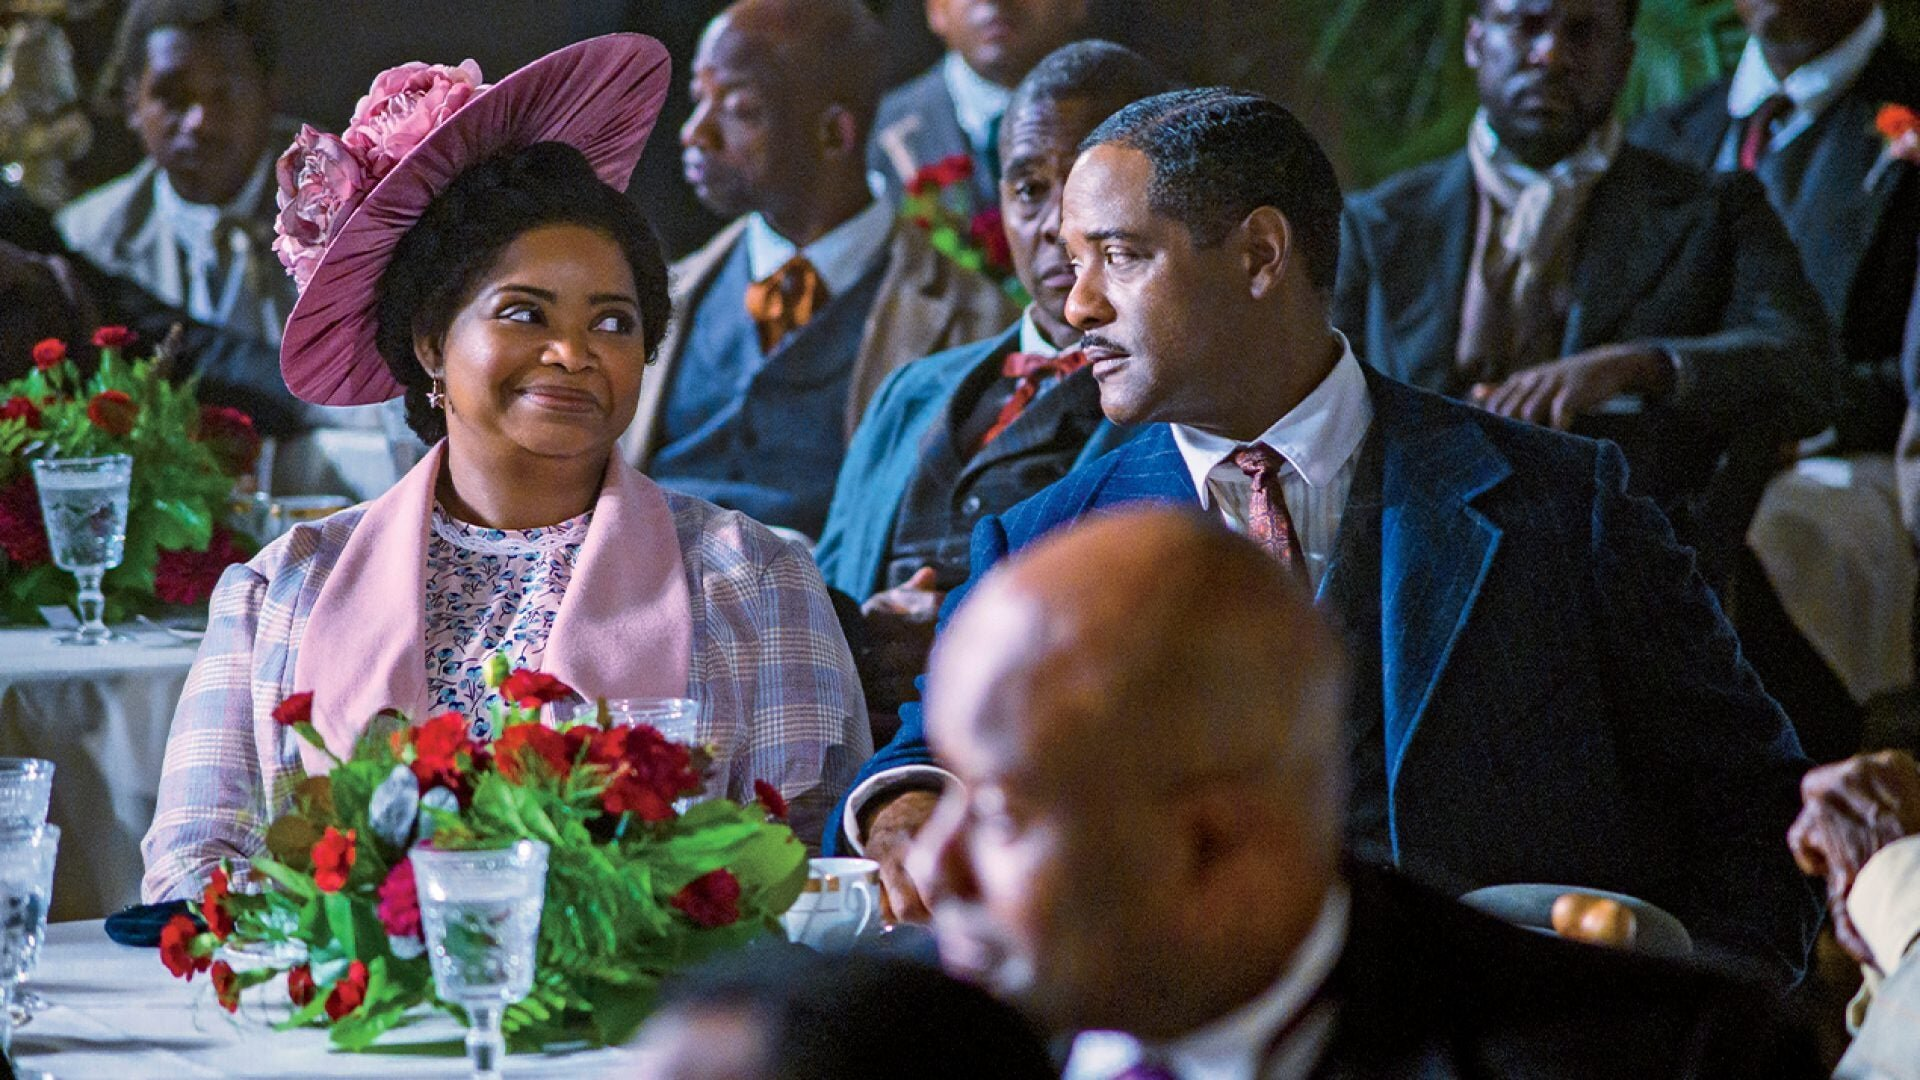 Self-Made isn't a film but a 4-part mini series however we had to include it on our must watch list! It tells the incredible story of Madam C.J. Walker's astronomical success in business in early 20th Century America against all the odds. She was the first in her family to be 'free-born' ,and overcame racism and sexism to become the first female self-made millionaire in America, even owning a house neighbouring Rockefeller in New York! C.J.Walker was an astute business woman, tapping into a previously ignored market- that of the black woman- which earned her such acclaim. She was also an advocate of black rights and female rights, as she invested in education, employing and training a staggering 20,000 female sales agents to sell her hair product who each gained independence through this role. While the show, directed by Kasi Lemmons, traces this black owned business success, it also promotes black art, music and culture throughout- exposing the lives of the creatives of black downtown Harlem and integrating modern black music artists with those of the contemporary period to chart the progression of the black experience in popular culture.